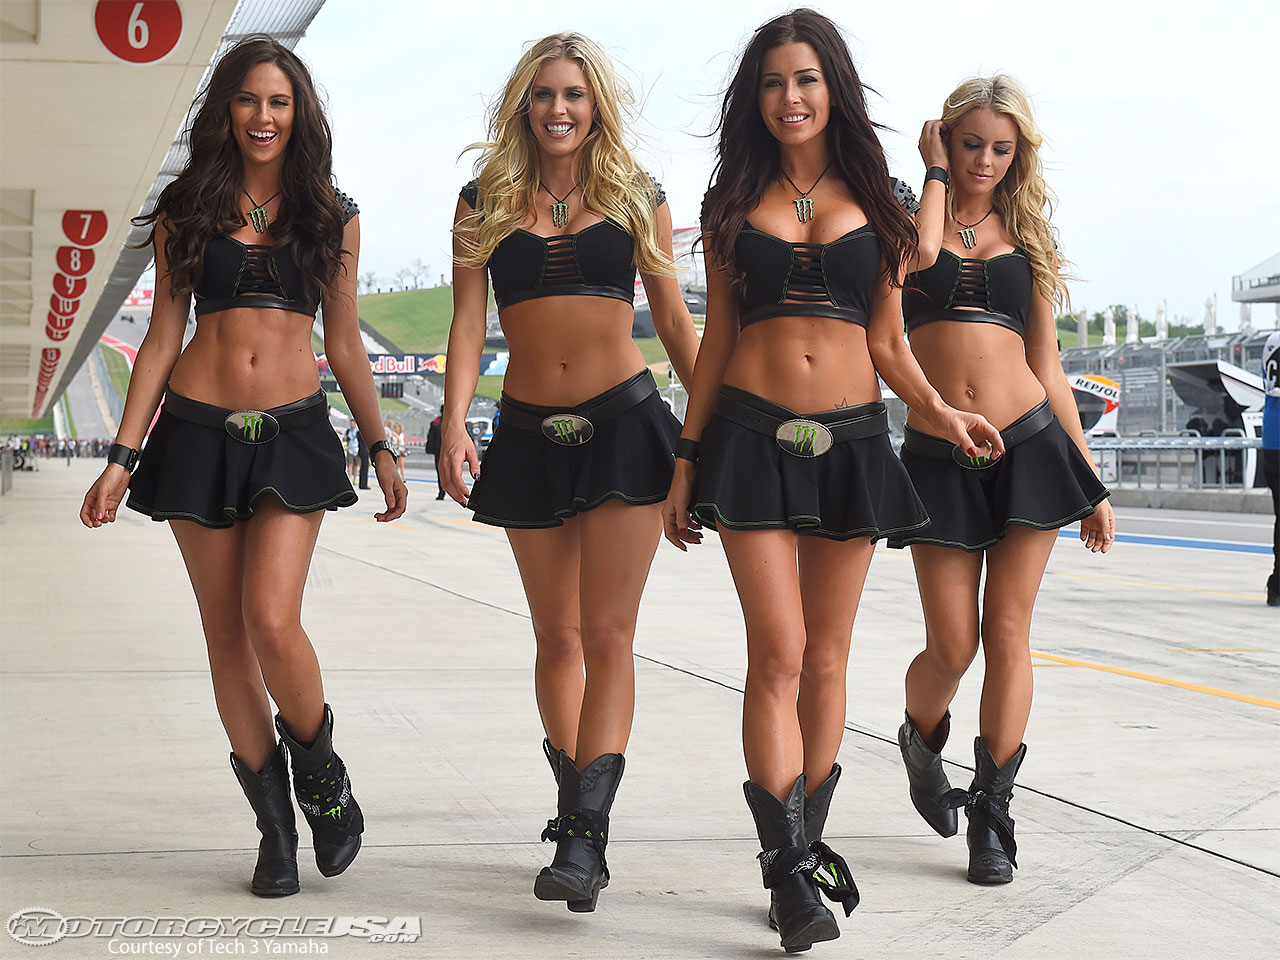 Sexy Grid girls are hot sports babes because they're sexy as